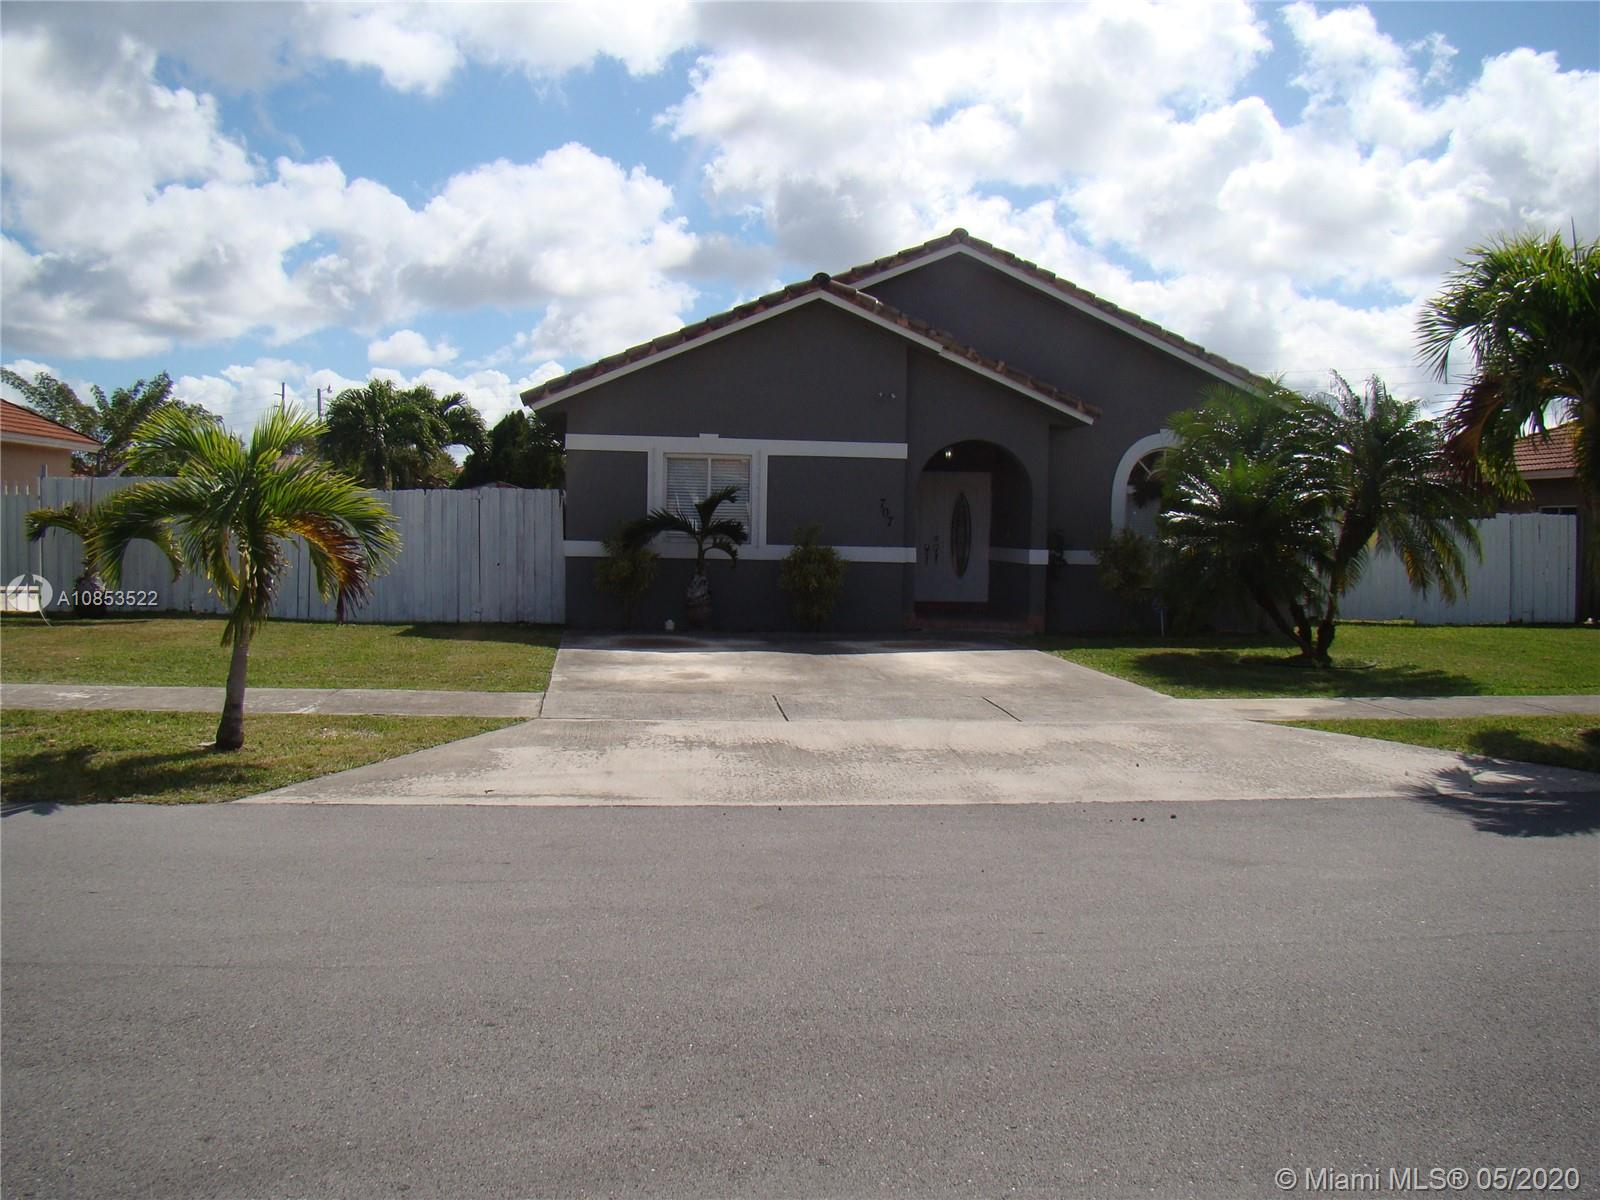 707 SE 12th Ter, Homestead, Florida 33033, 3 Bedrooms Bedrooms, ,2 BathroomsBathrooms,Residential,For Sale,707 SE 12th Ter,A10853522